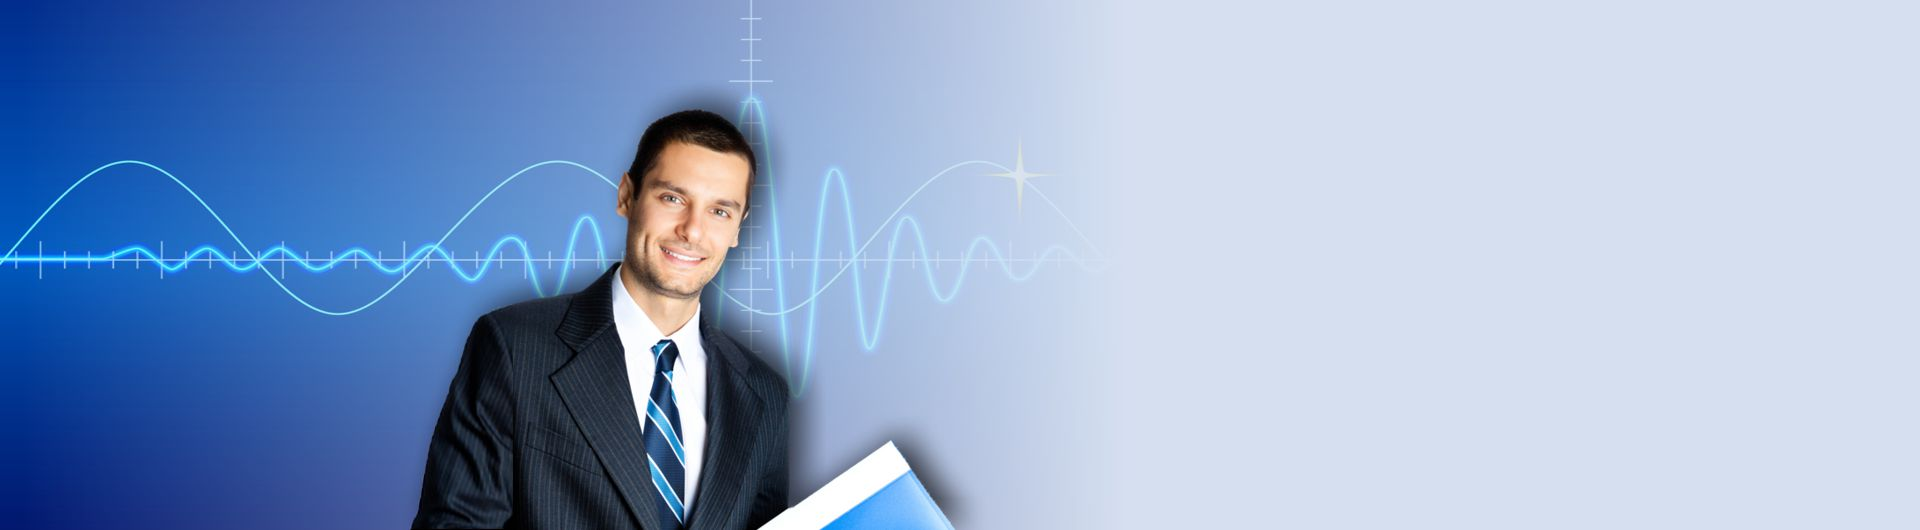 photo of man smiling in front of sine wave